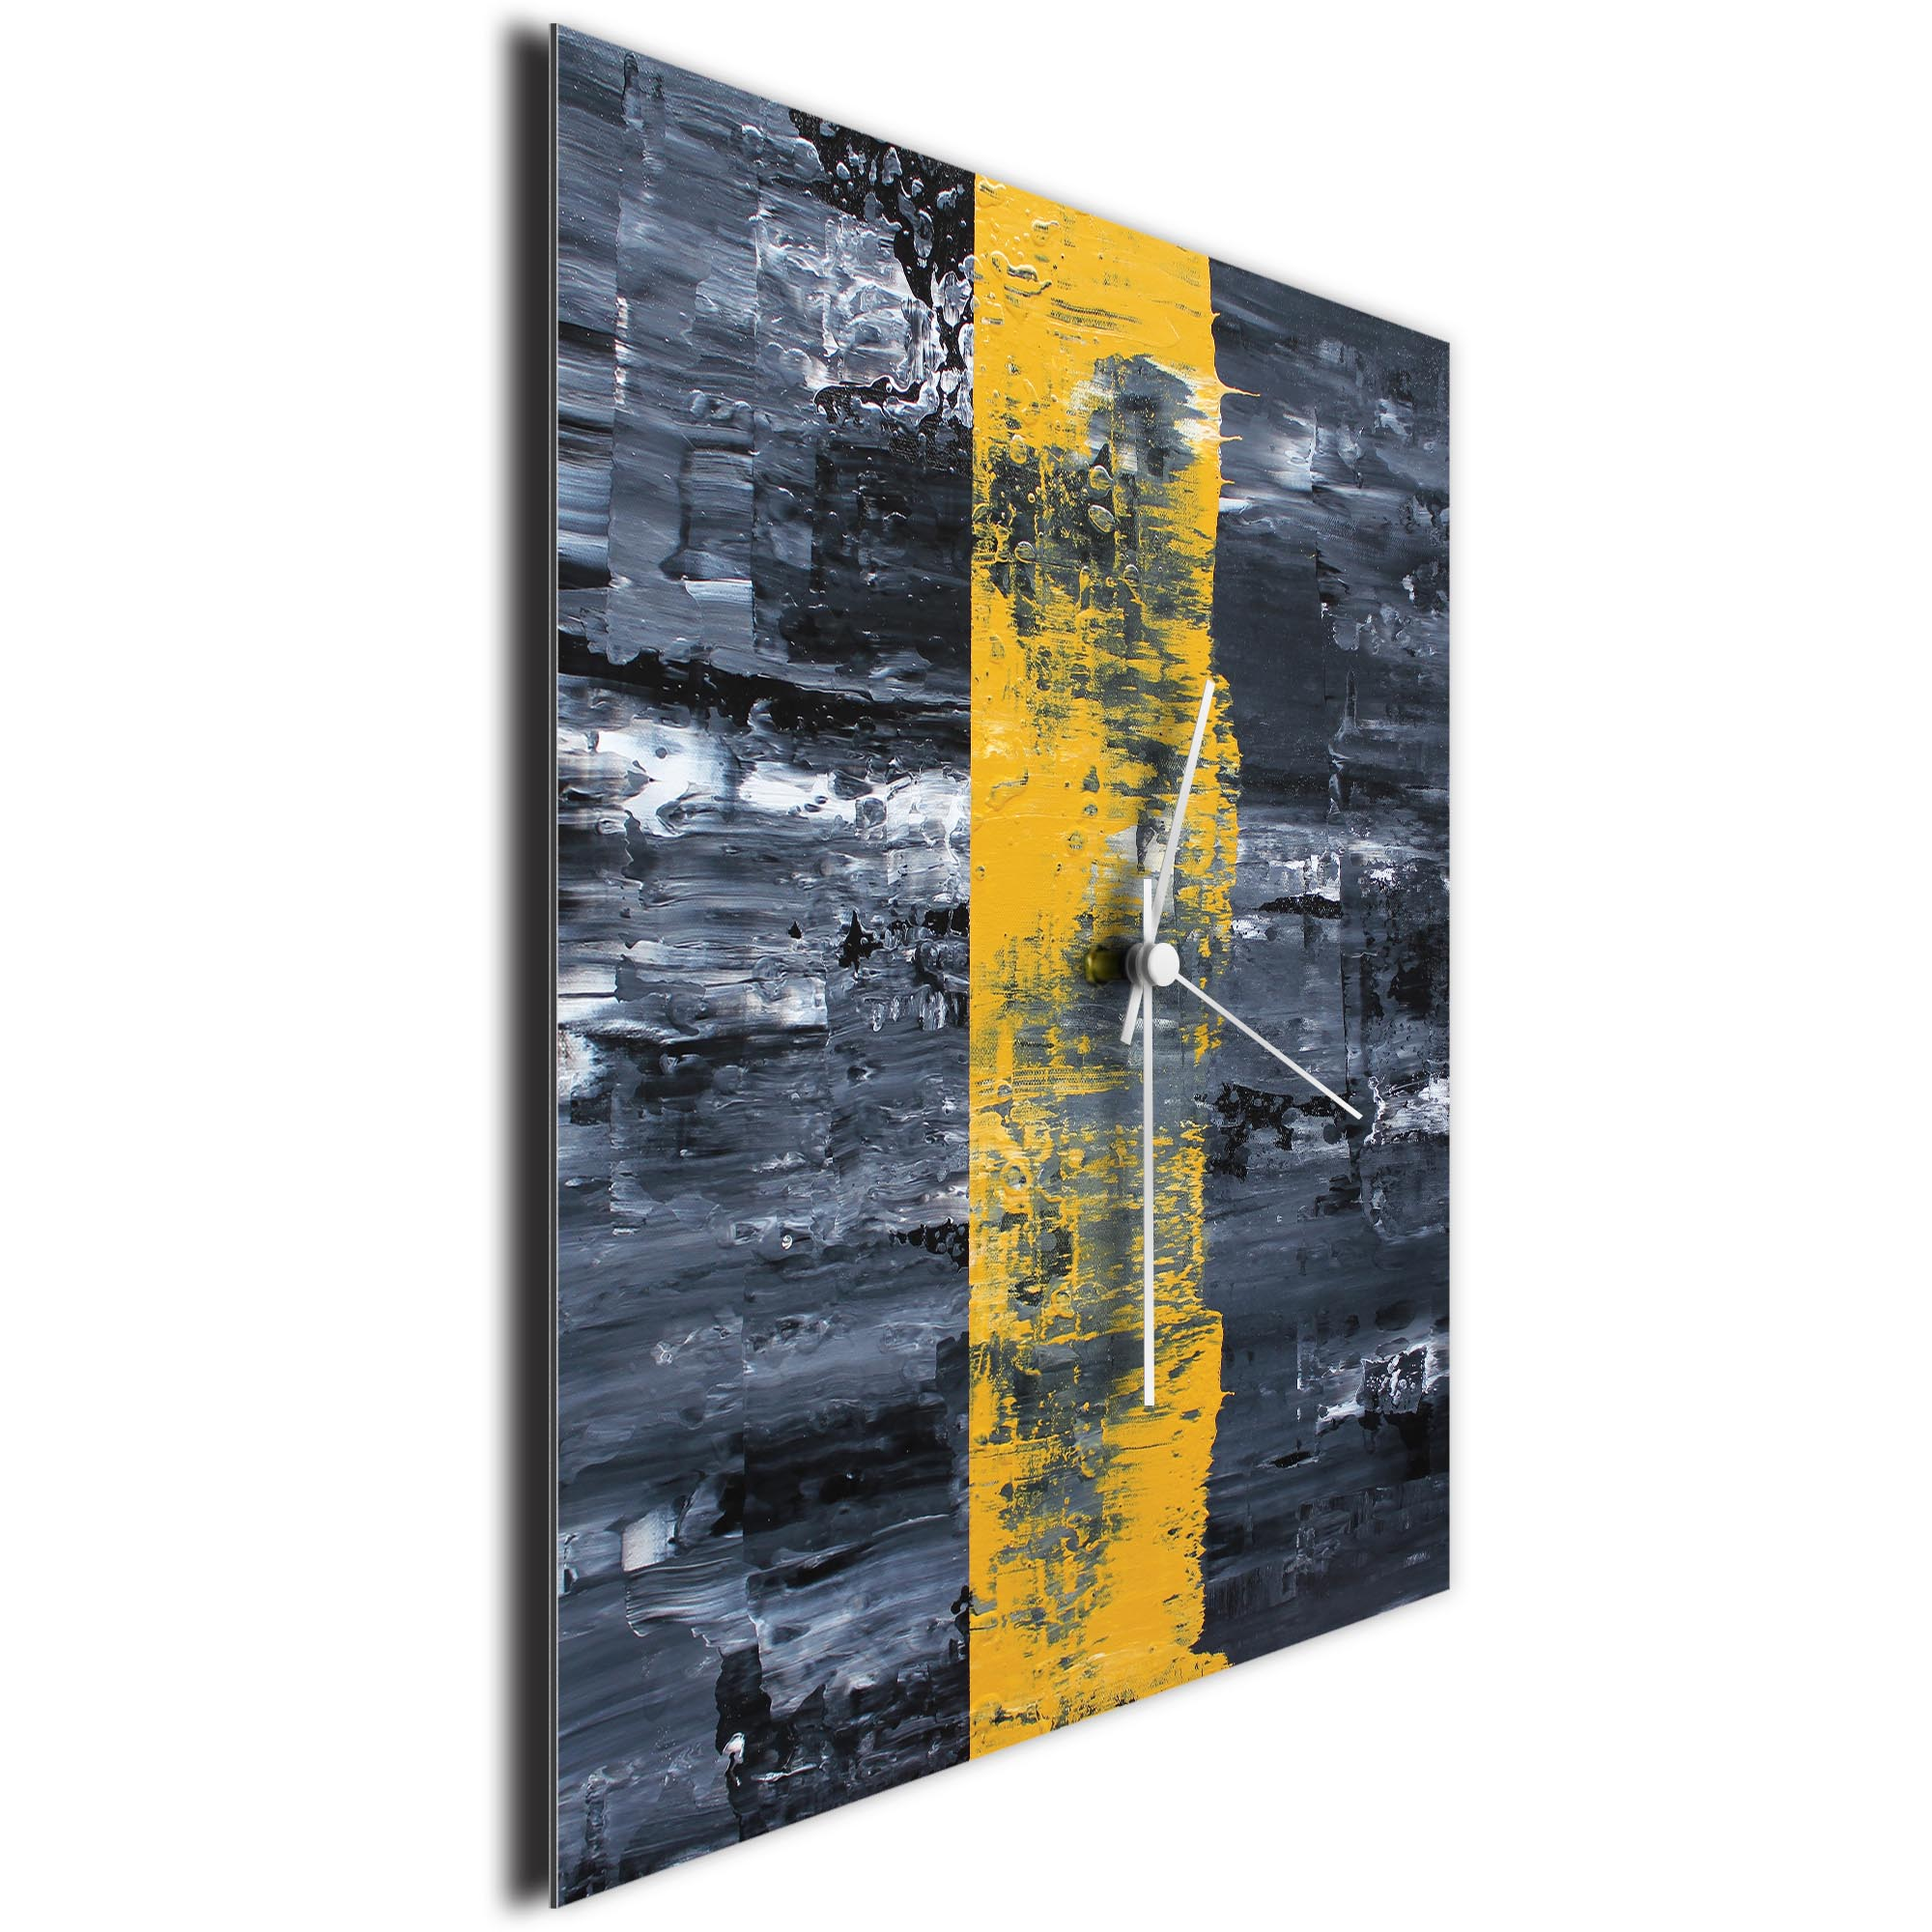 Yellow Line Square Clock Large by Mendo Vasilevski - Urban Abstract Home Decor - Image 3